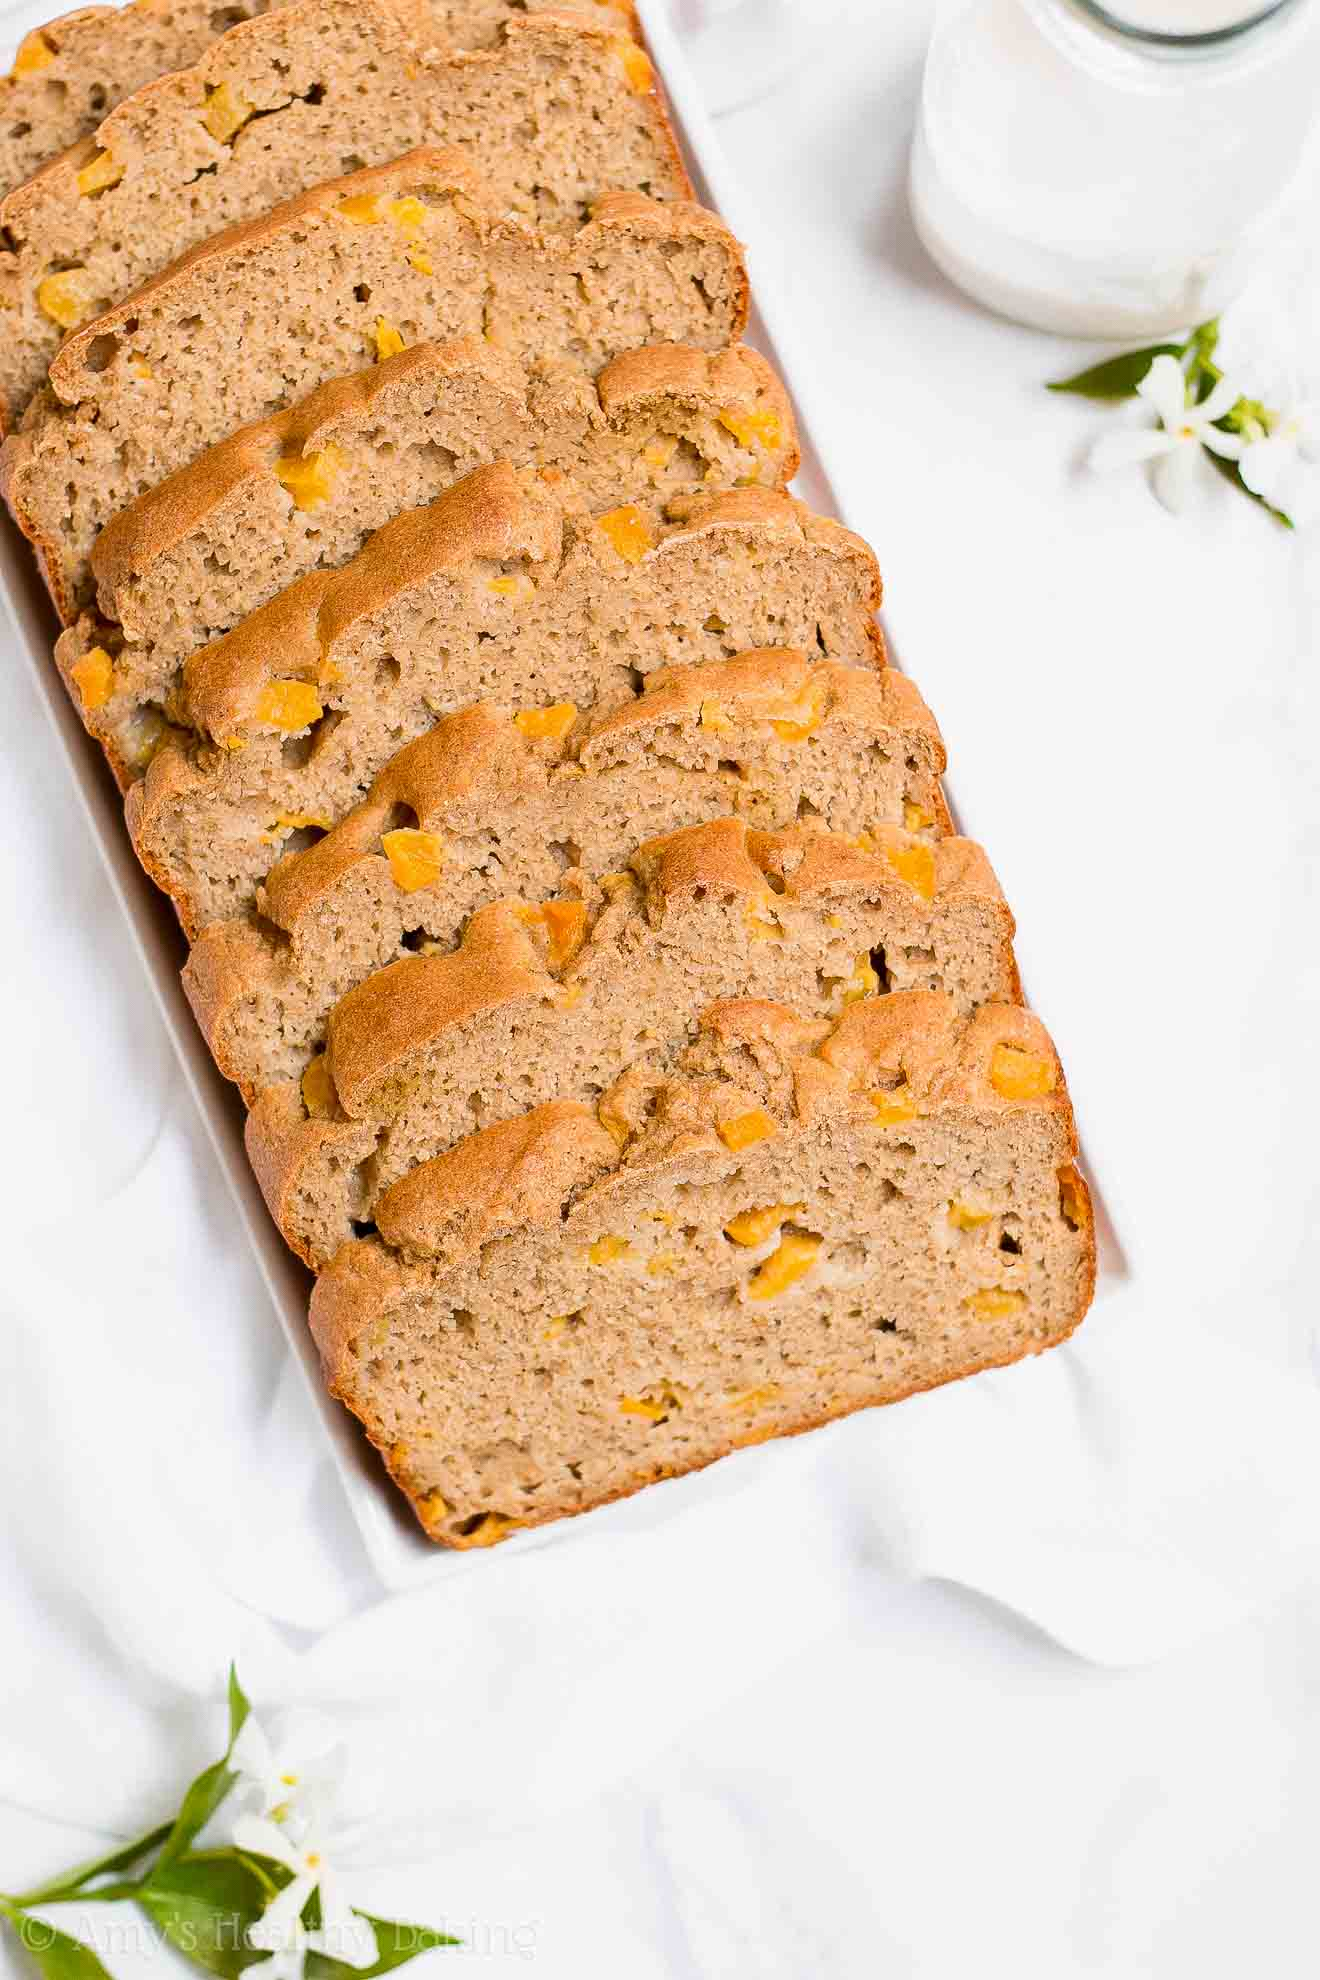 Easy Healthy Gluten Free Almond Peach Pound Cake